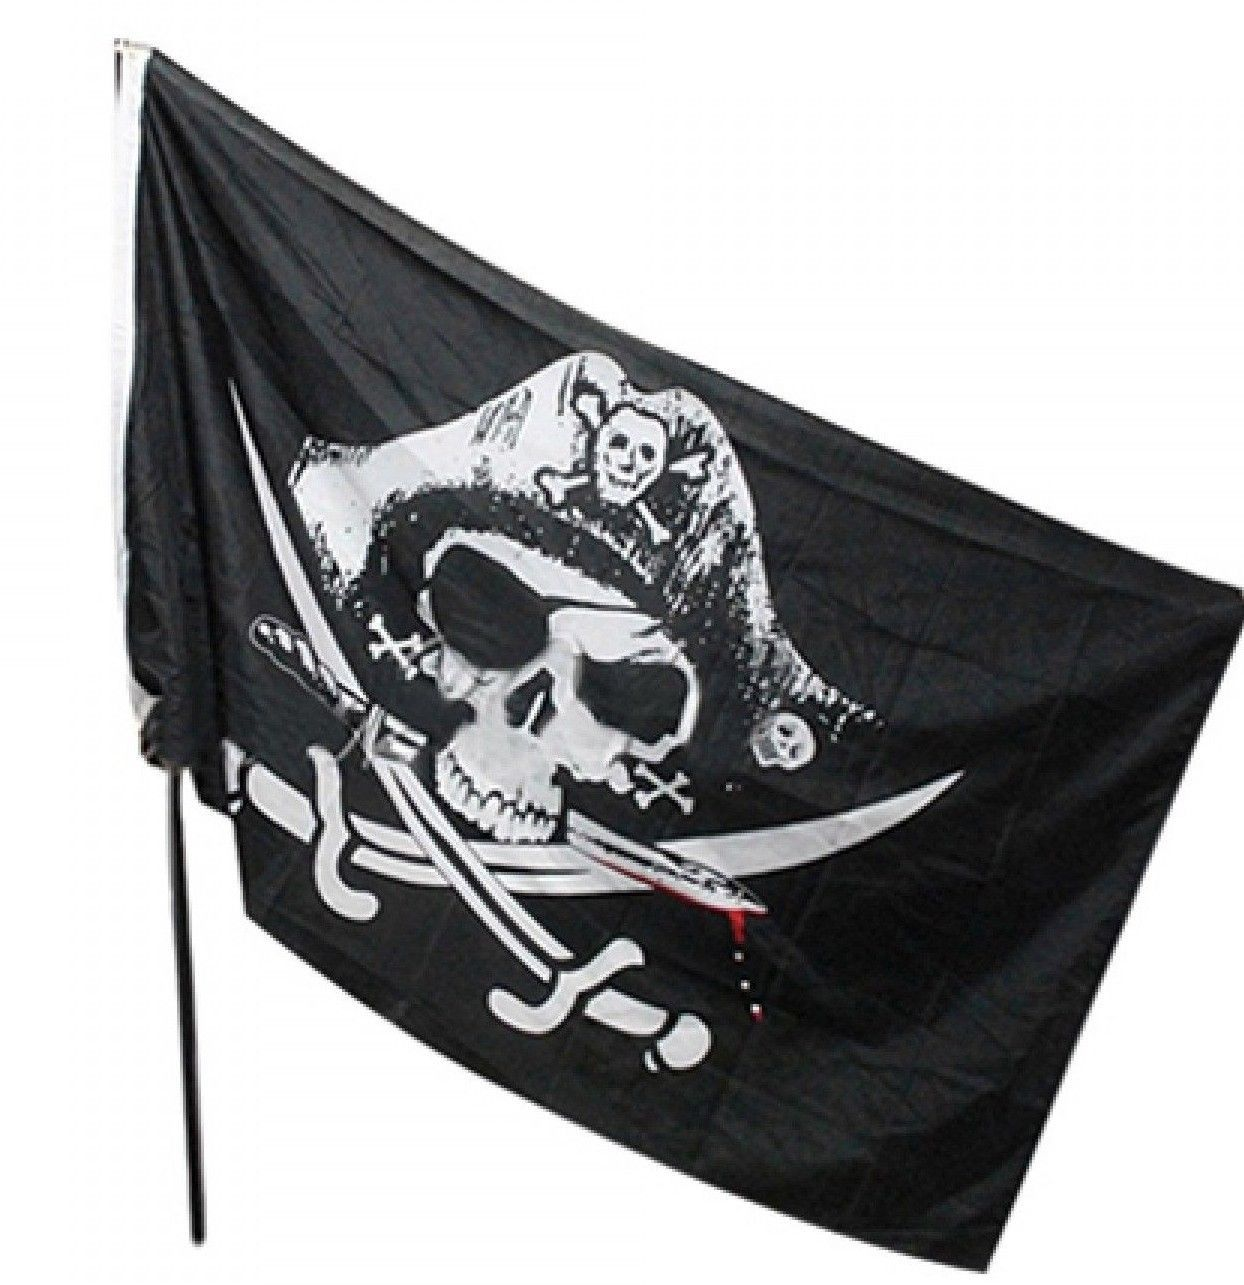 Pirate Flag Black Skull Crossbones Knives Scary Party Supplies Halloween Decor